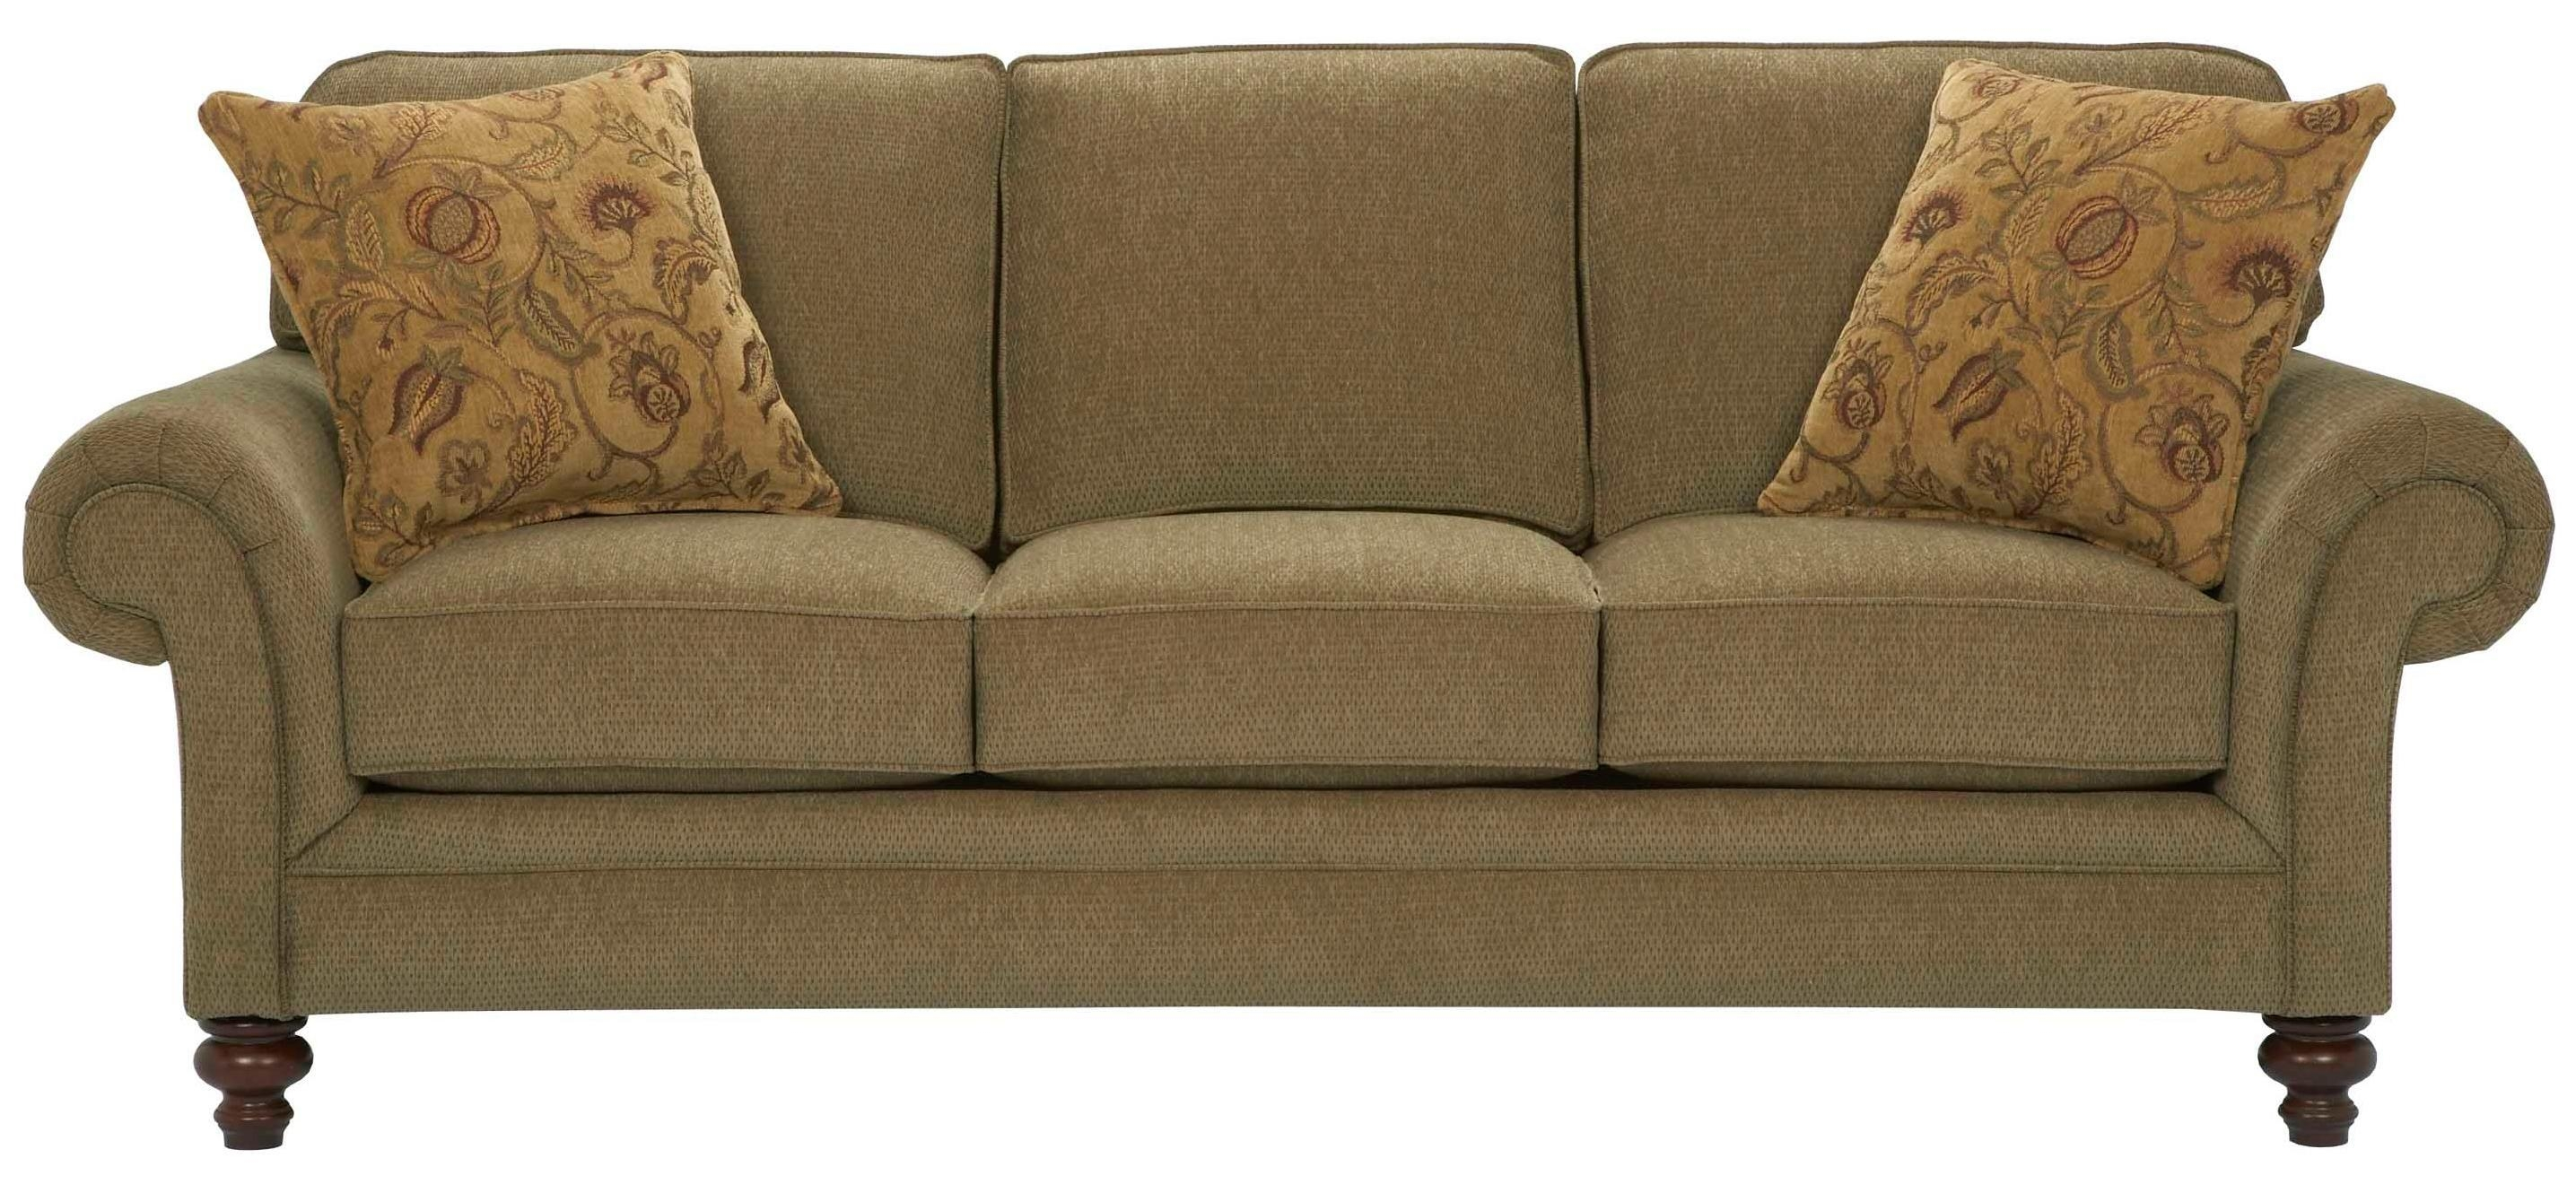 Broyhill Emily Sofa With Concept Image 13121 | Kengire Within Broyhill Emily Sofas (Image 2 of 20)